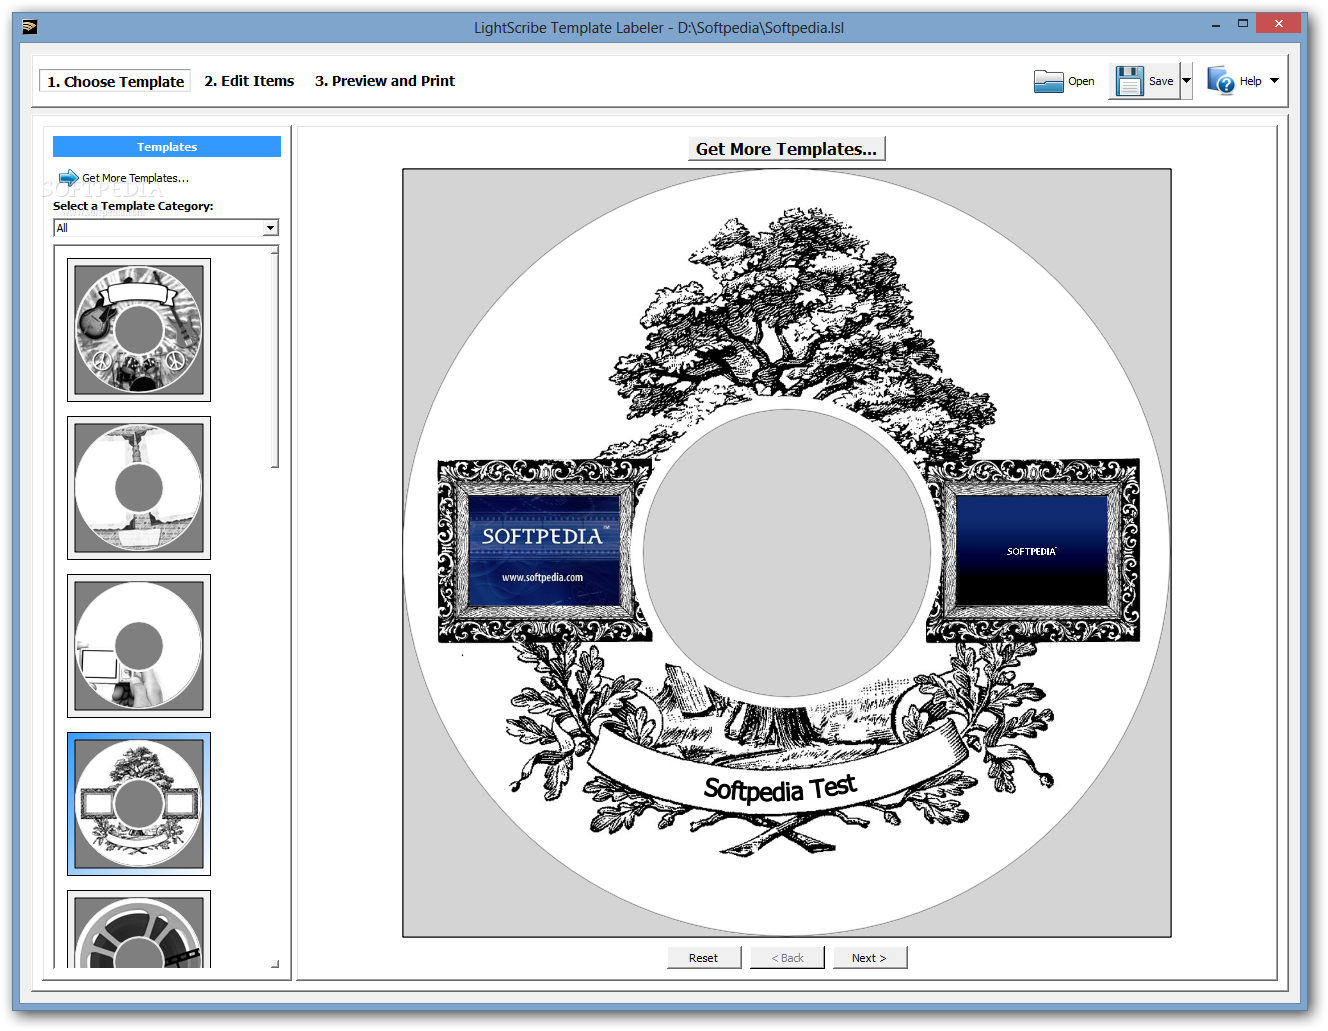 Download LightScribe Template Labeler 1.18.27.10